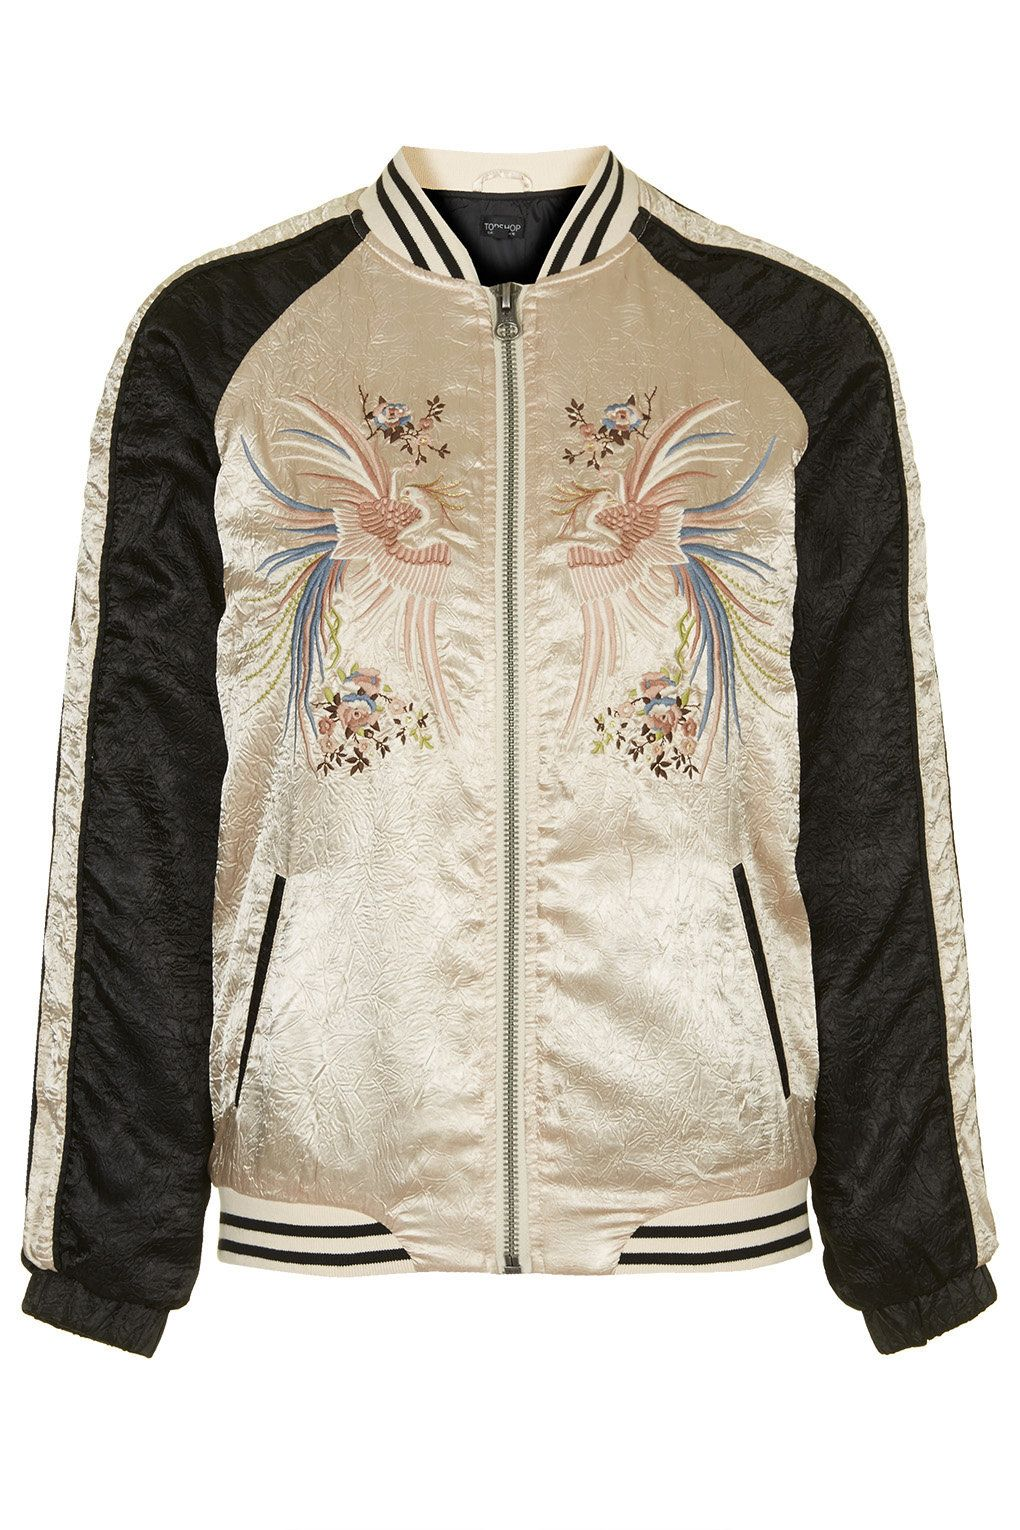 Sateen Embroidered Bomber - Jackets & Coats - Clothing | Topshop ...